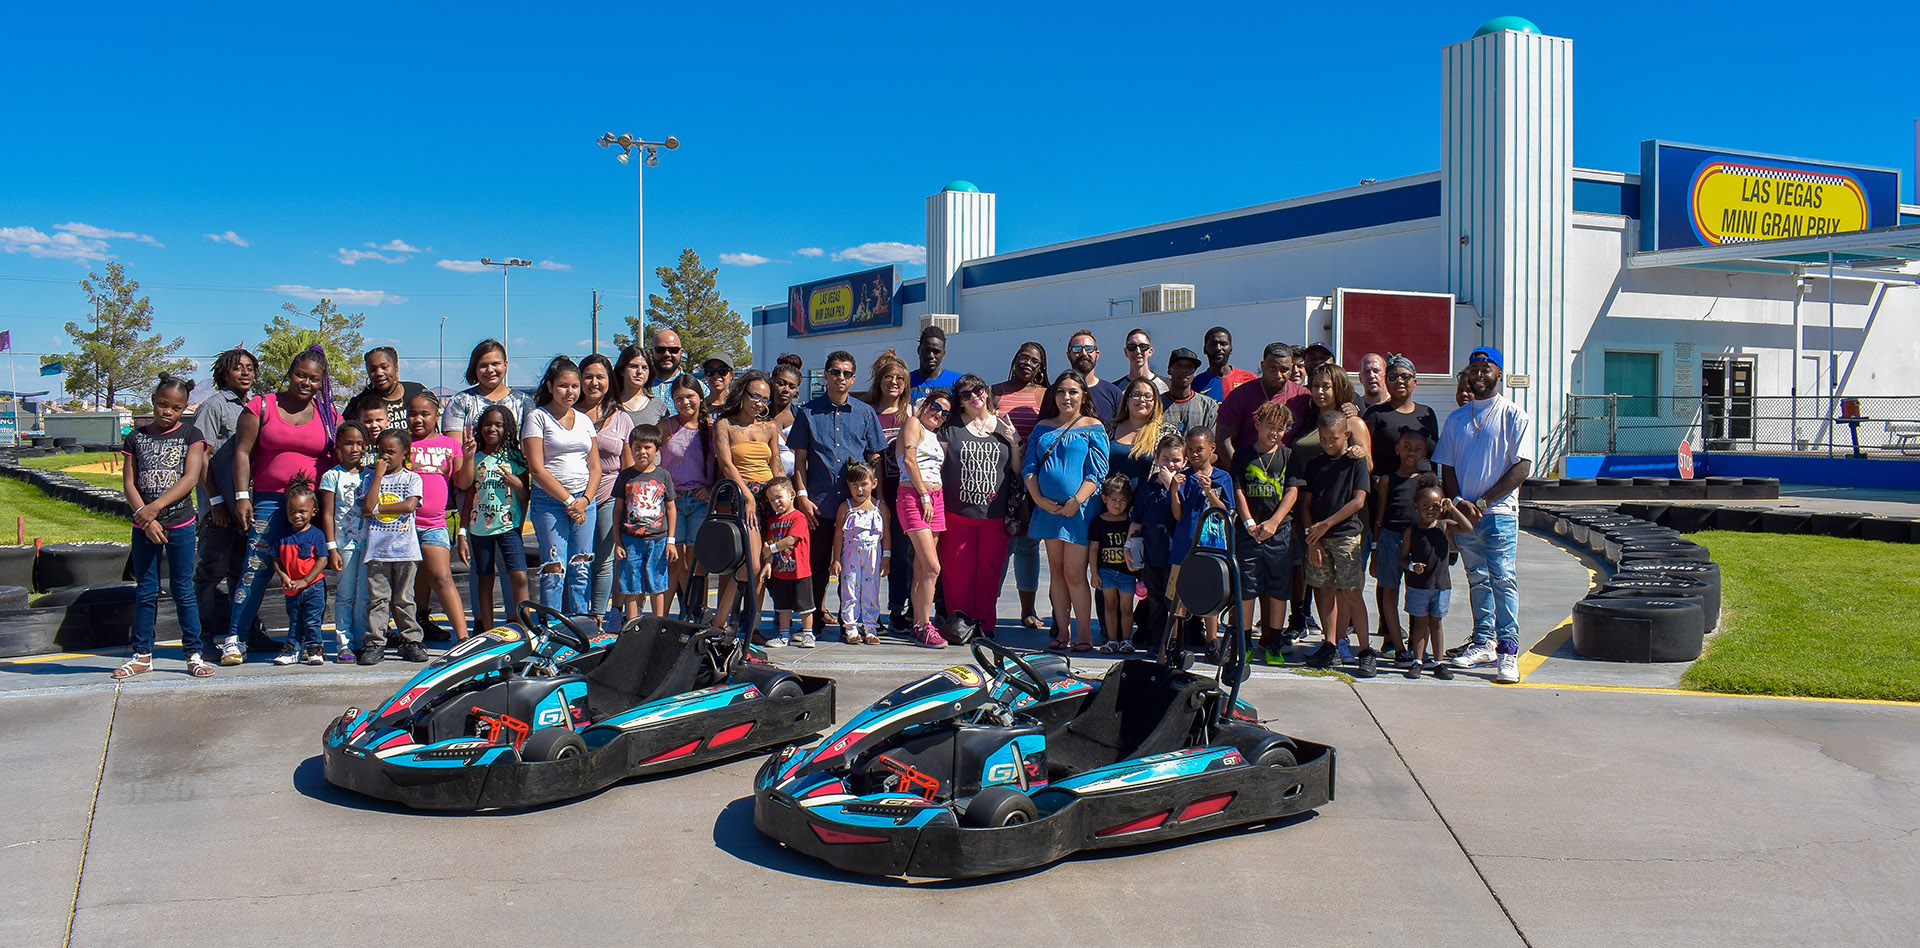 Las Vegas Mini Gran Prix Group Event Photo 1